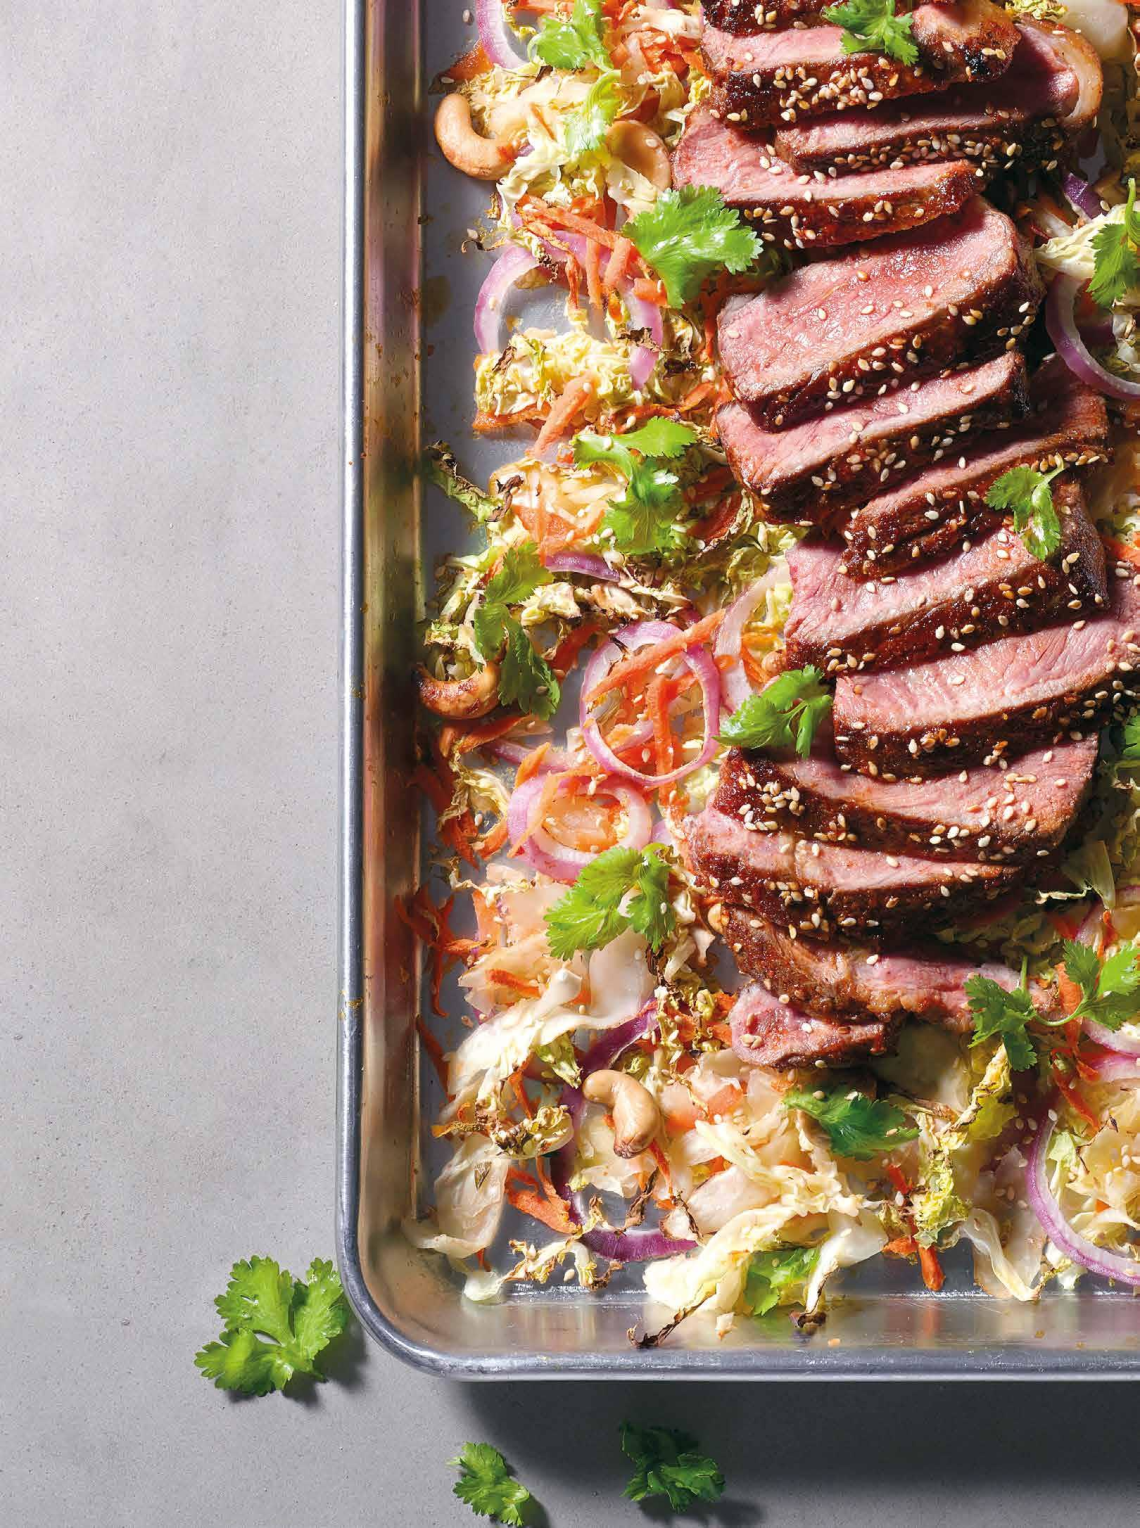 SESAME STEAK WITH CABBAGE, CARROTS, ONIONS, AND KIMCHI